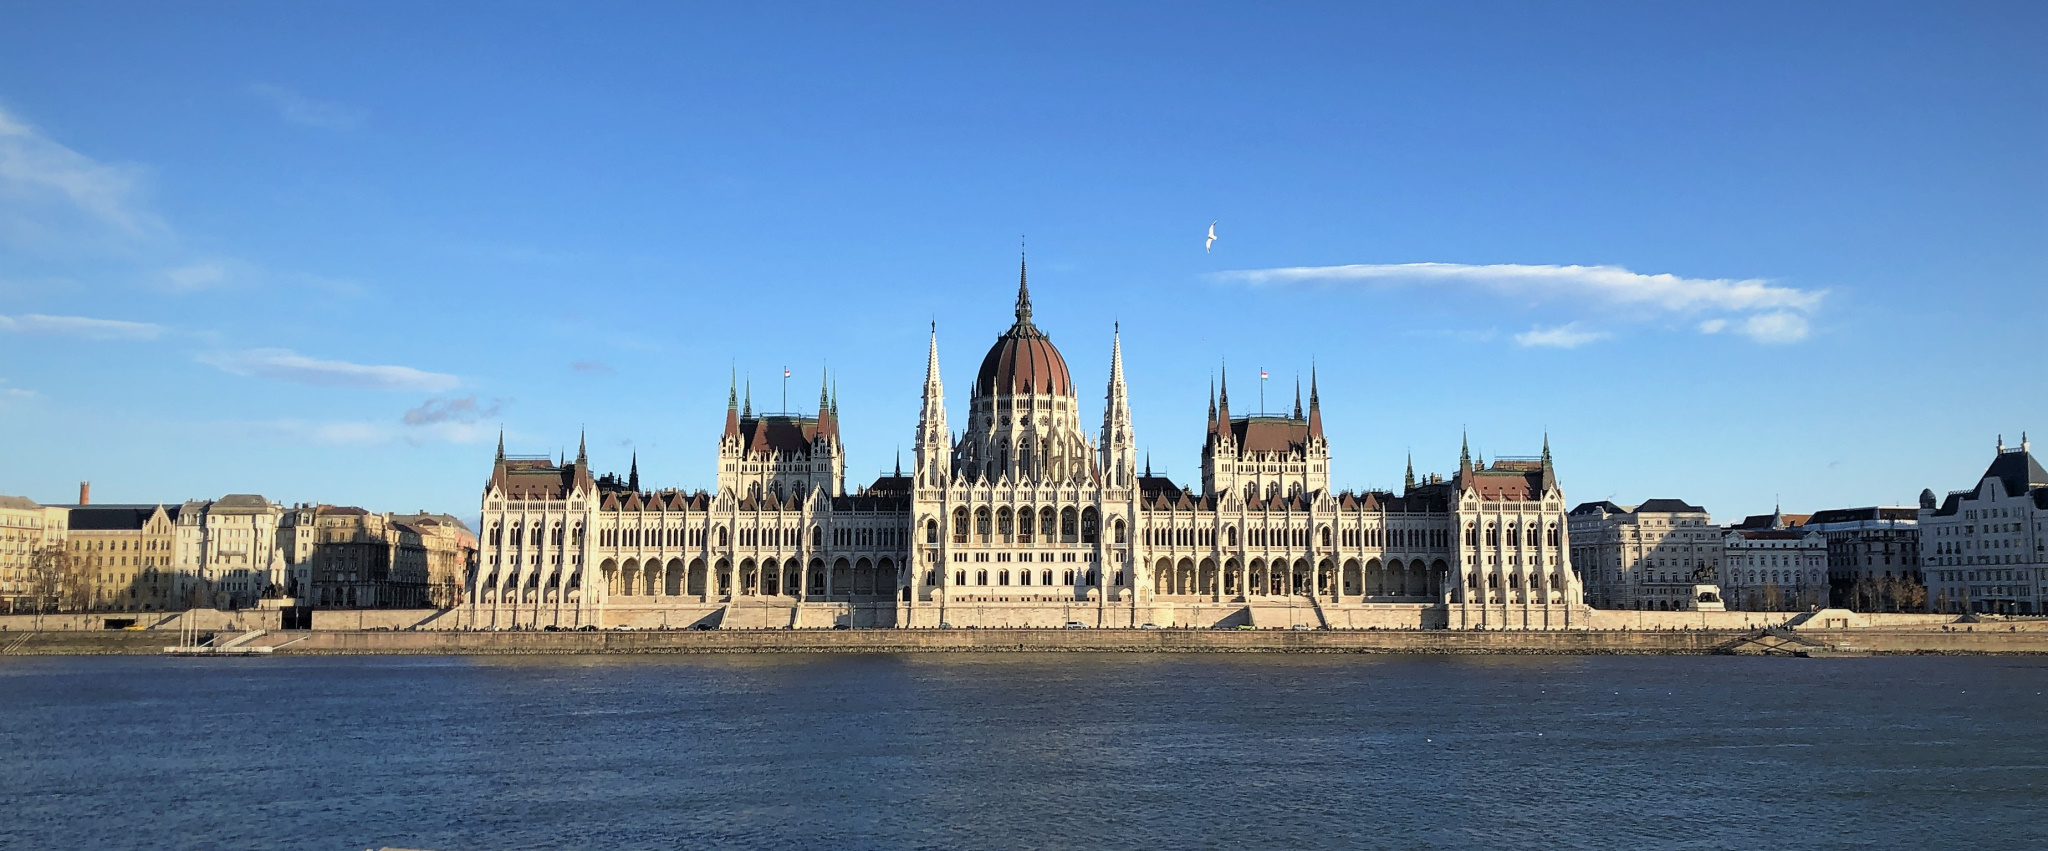 Parliament from Across the Danube, Budapest, Hungary